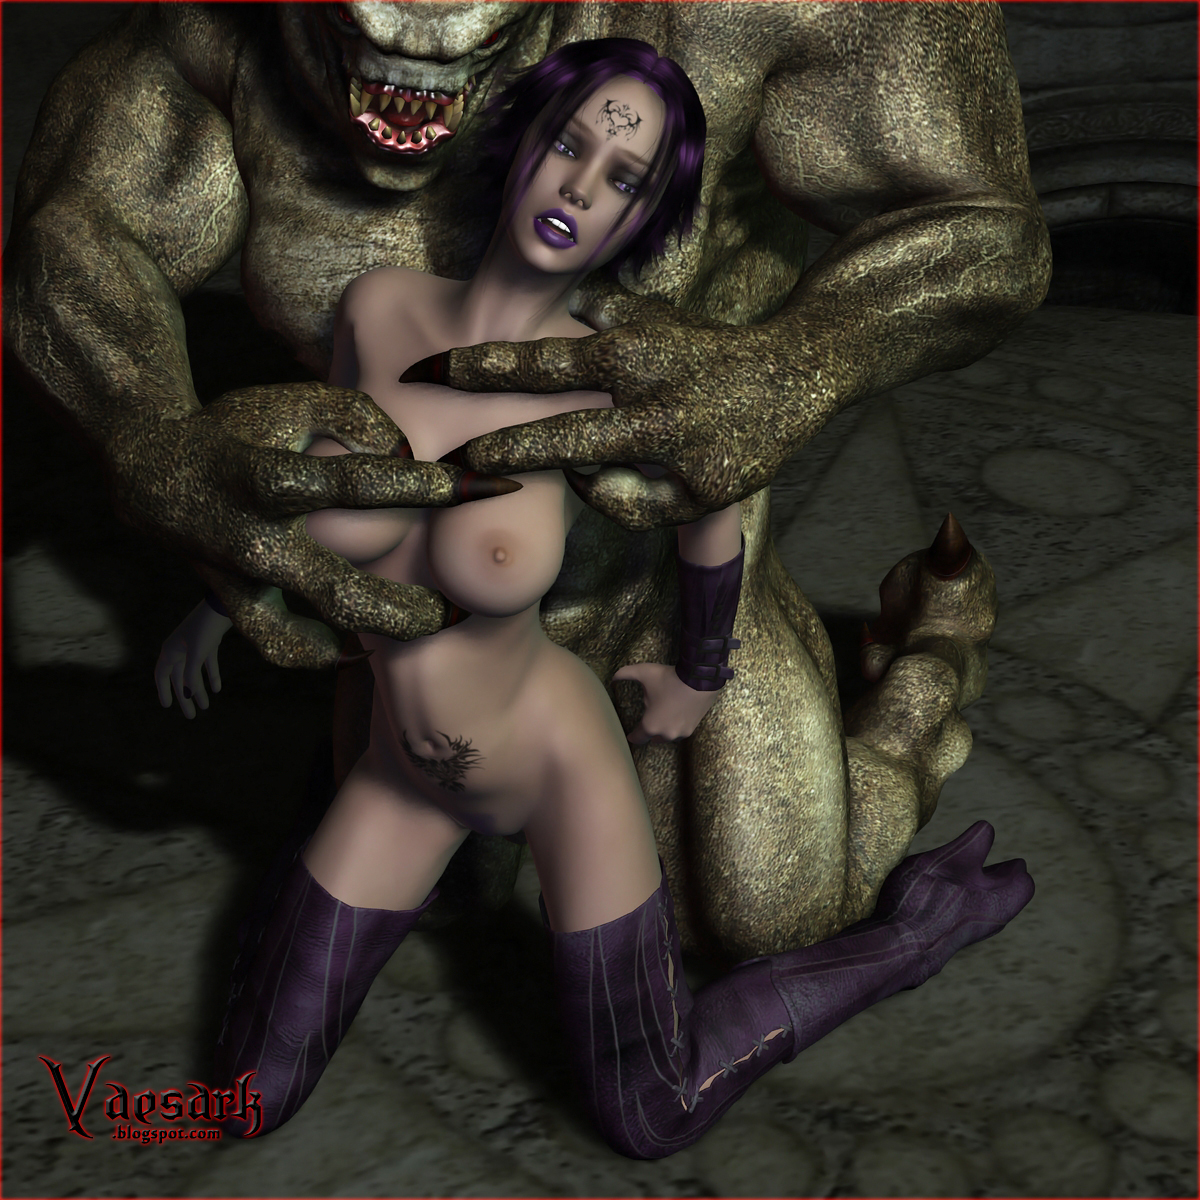 Woman and monster porn naked photo